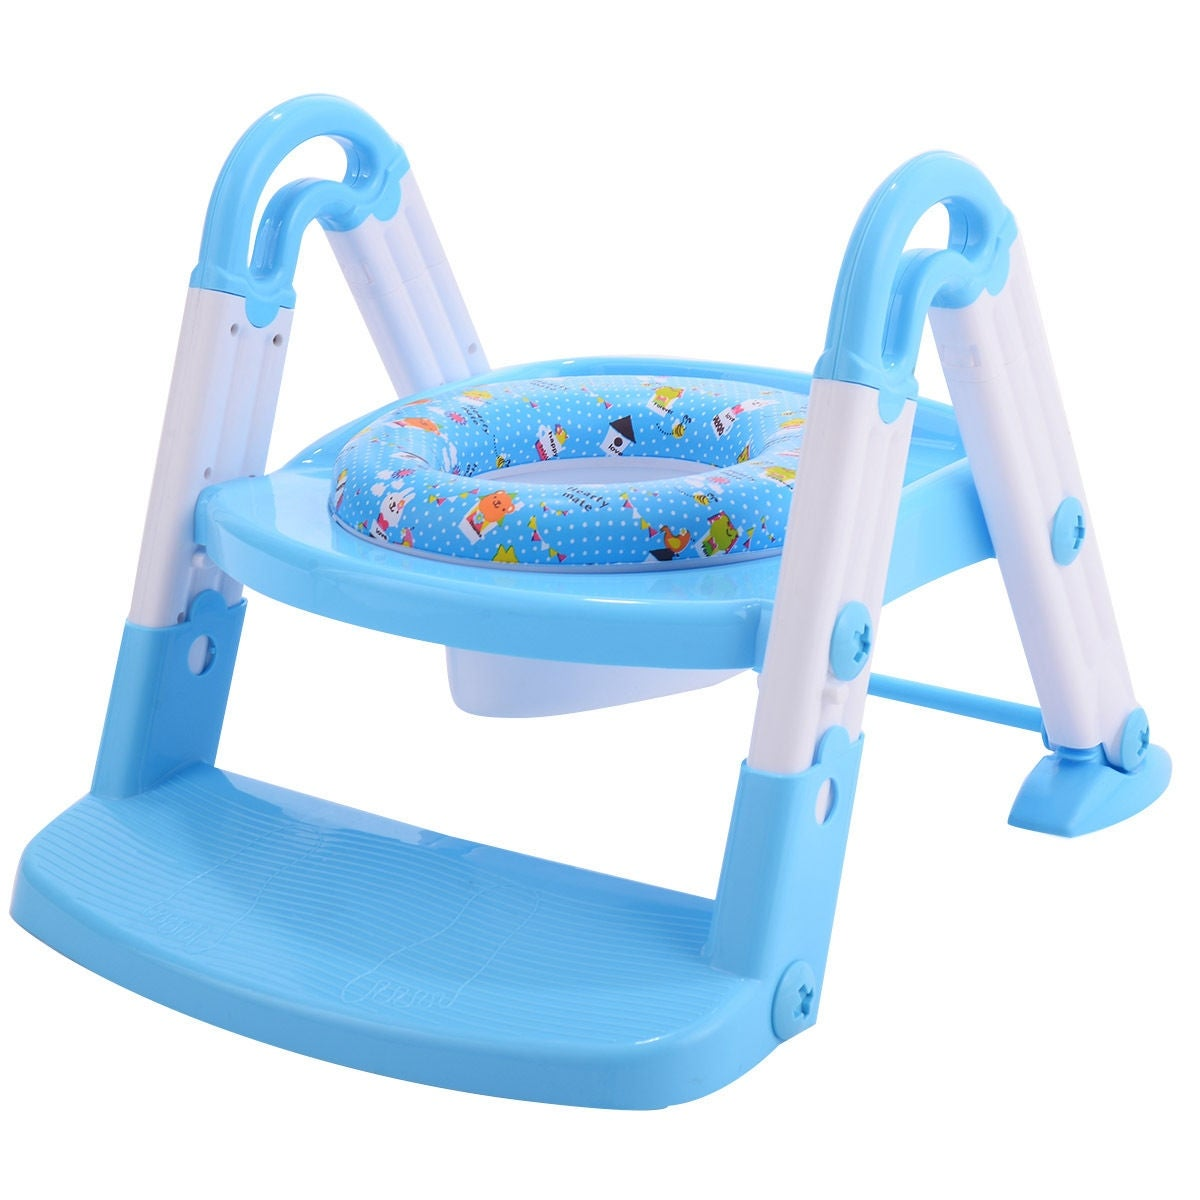 Shop Costway 3 in 1 Baby Potty Training Toilet Chair Seat Step ...